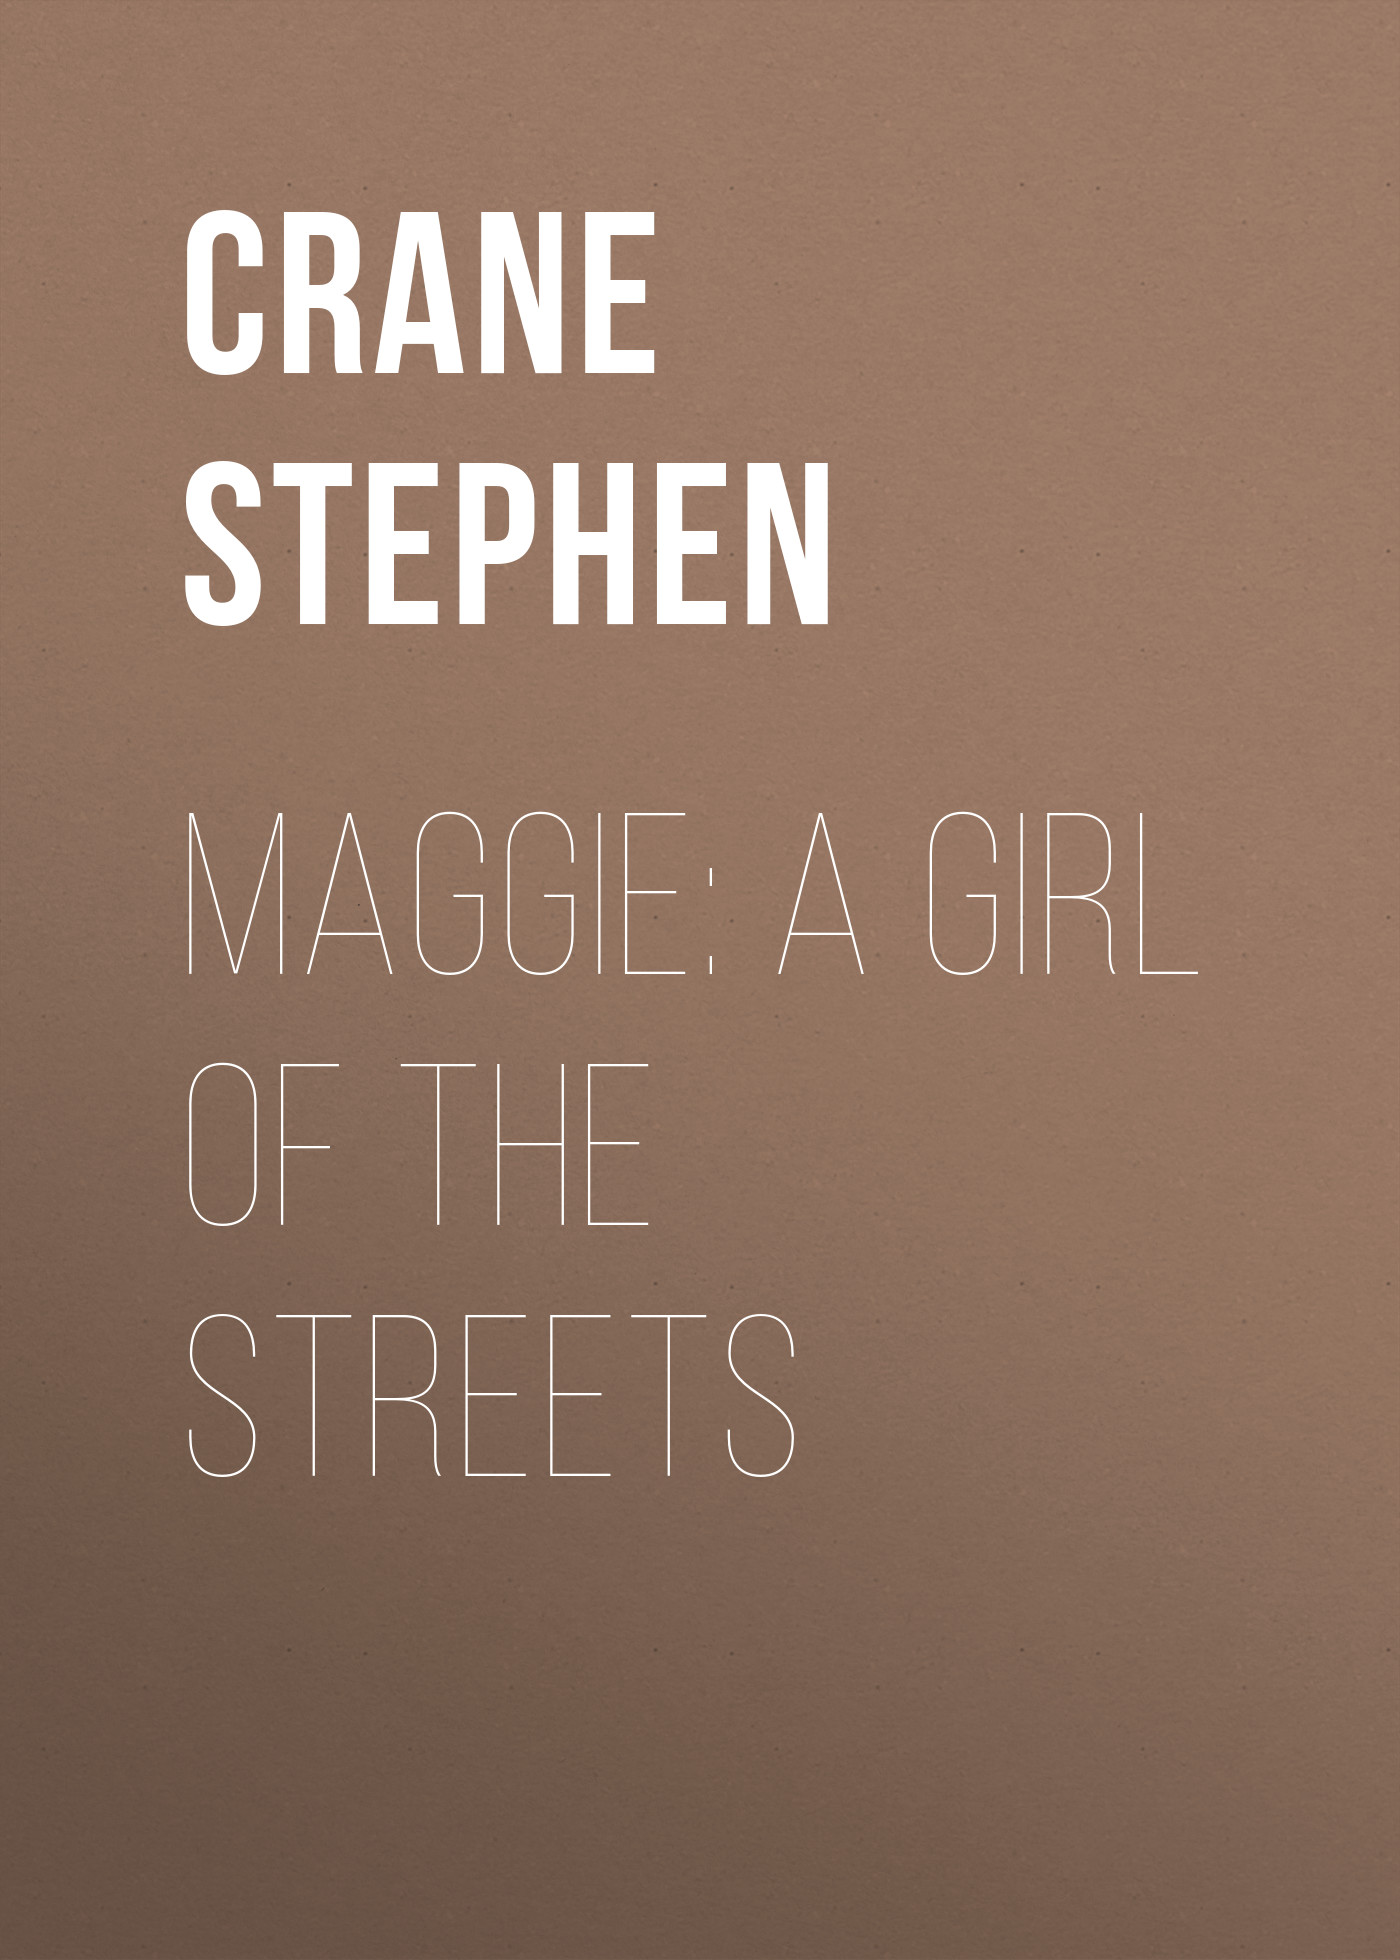 Crane Stephen Maggie: A Girl of the Streets crane stephen maggie a girl of the streets